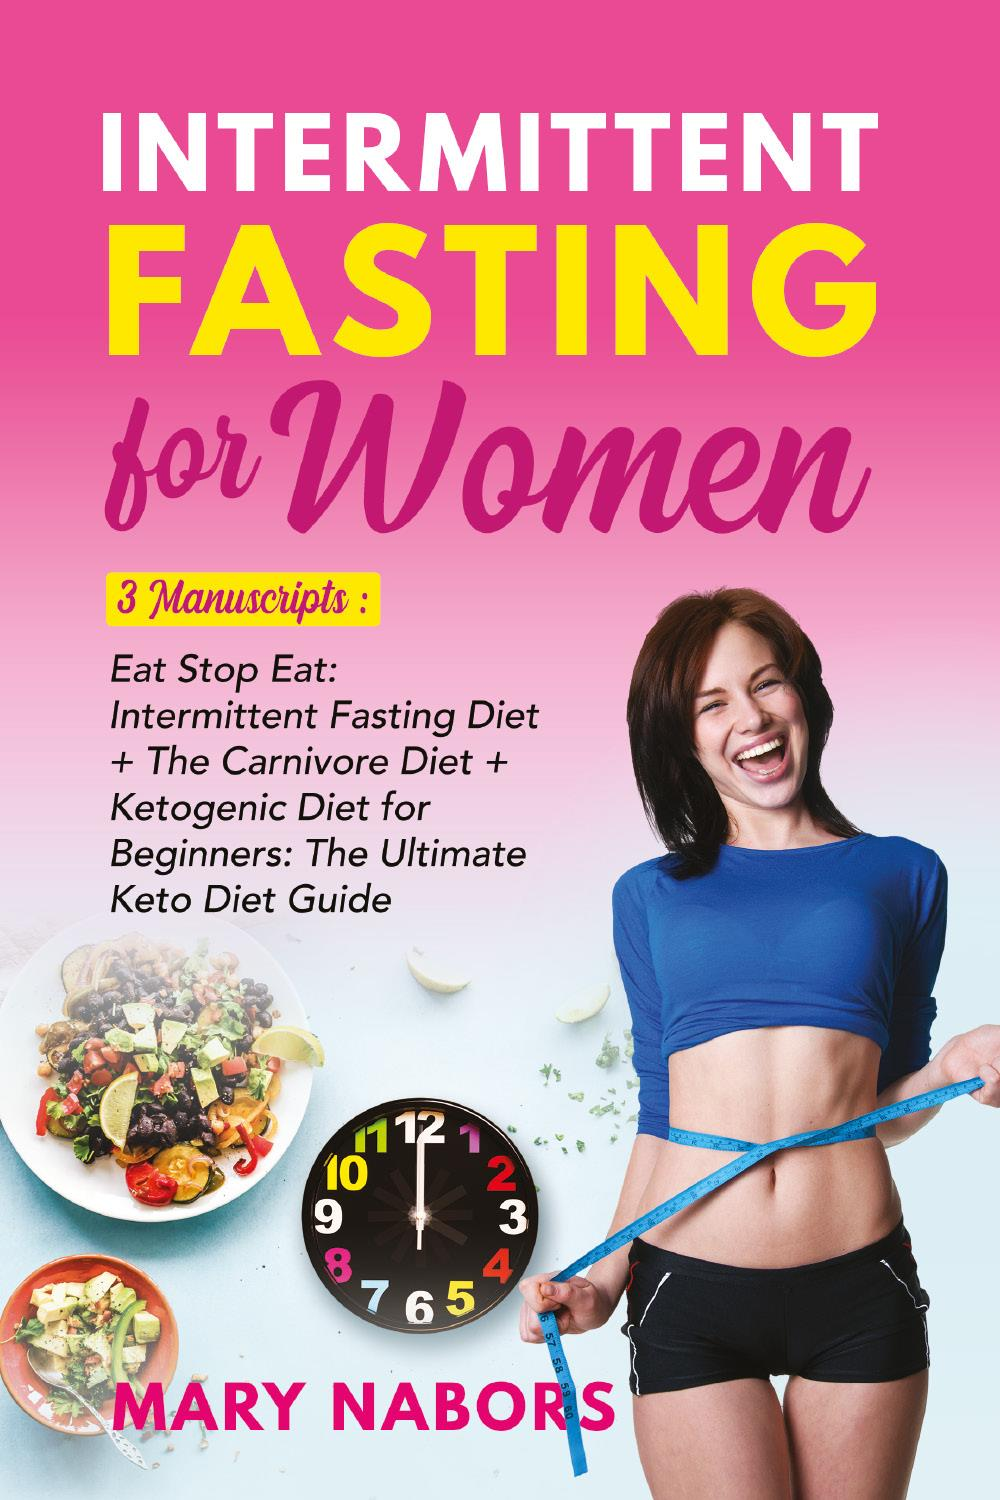 Intermittent Fasting for Women. 3 Manuscripts: Eat Stop Eat: Intermittent Fasting Diet + The Carnivore Diet + Ketogenic Diet for Beginners: The Ultimate Keto Diet Guide